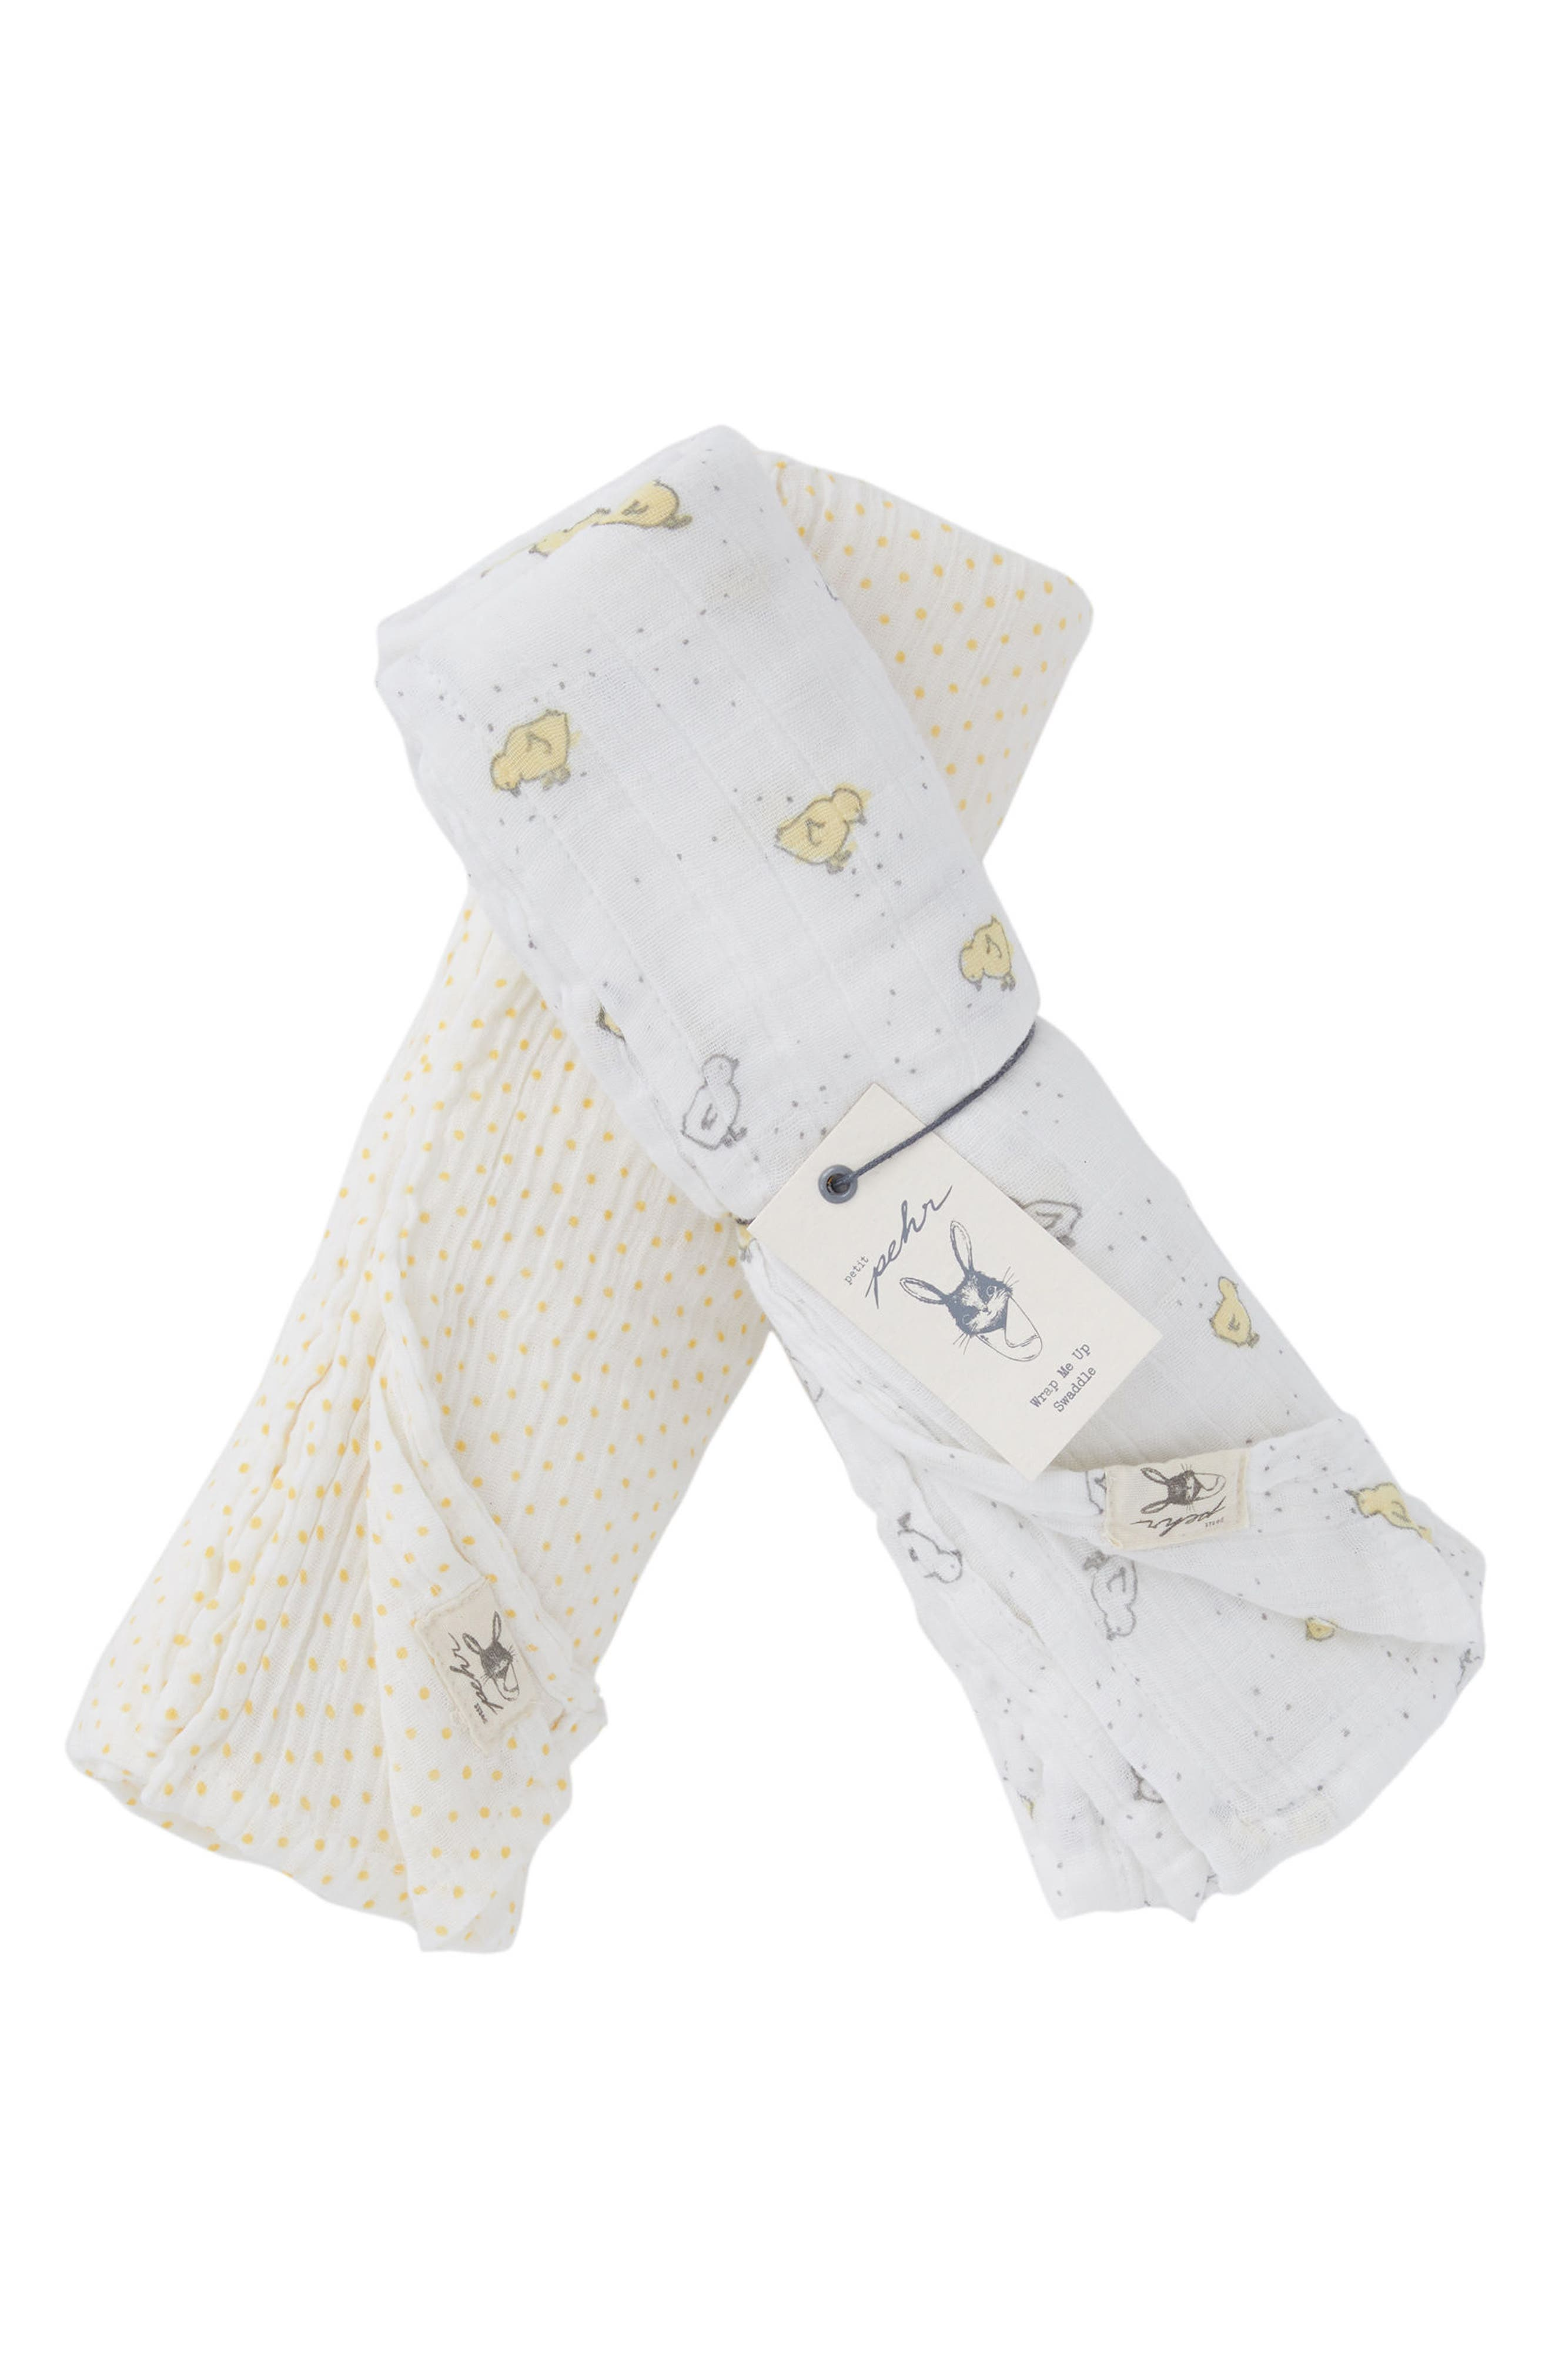 Alternate Image 1 Selected - Petit Pehr Chick Swaddle Blanket Set (Baby)